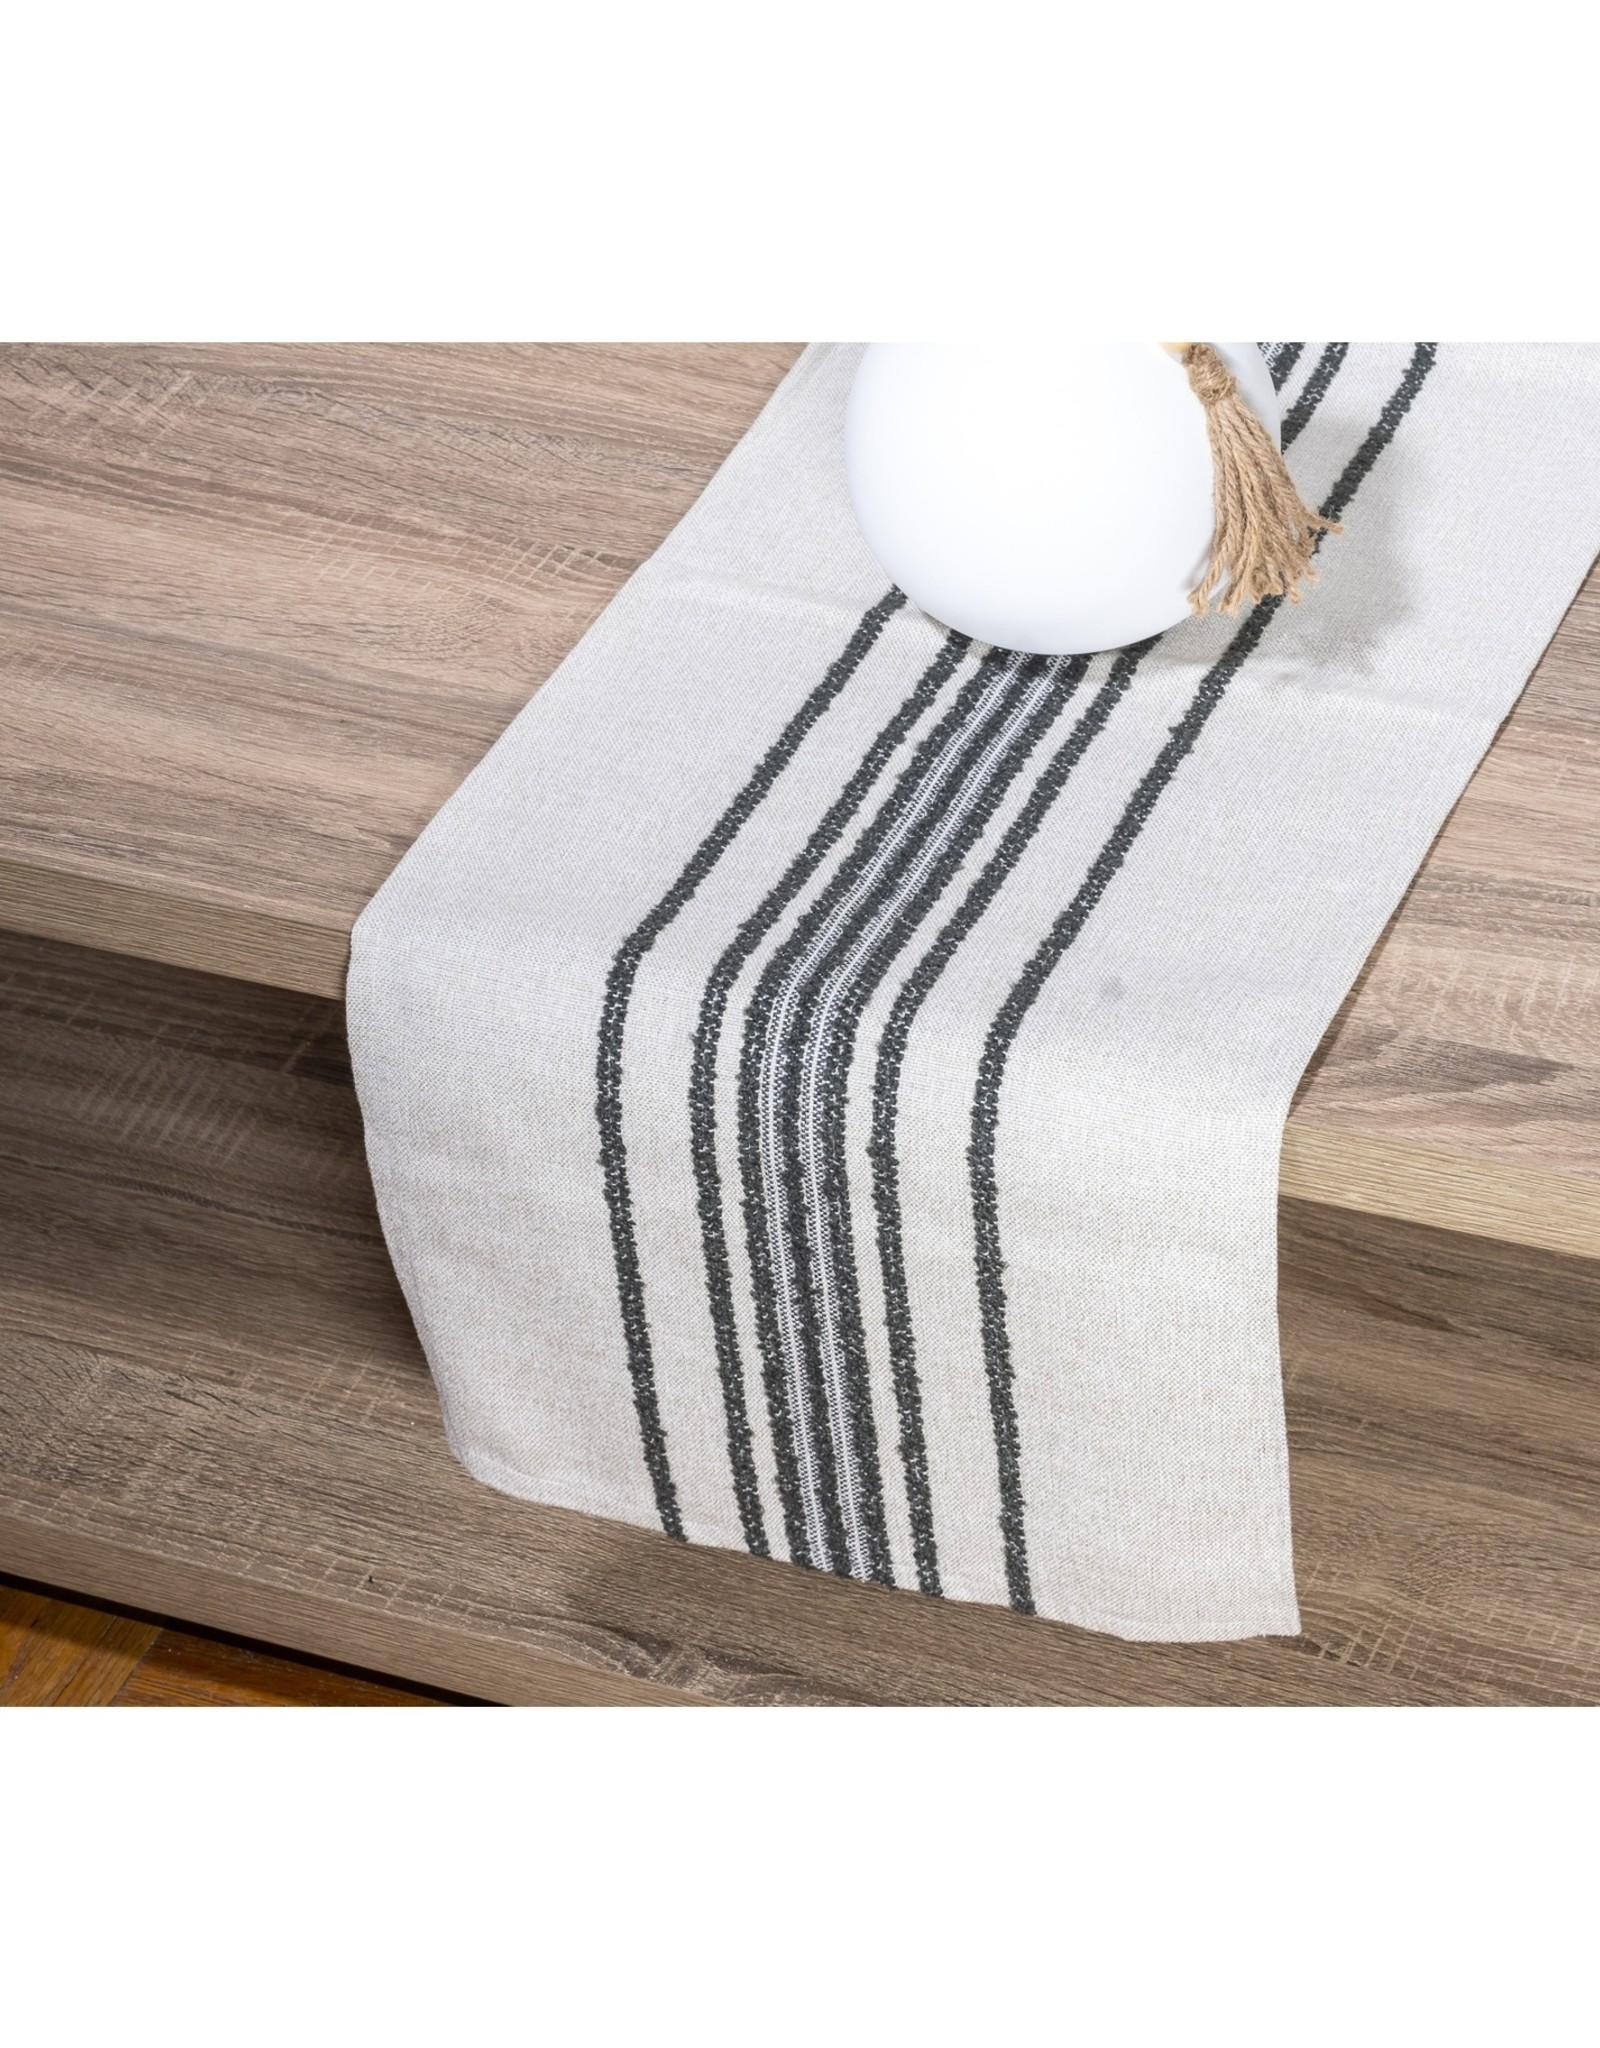 Old Lake George Table Runner -  grey and white texture 13 x 54